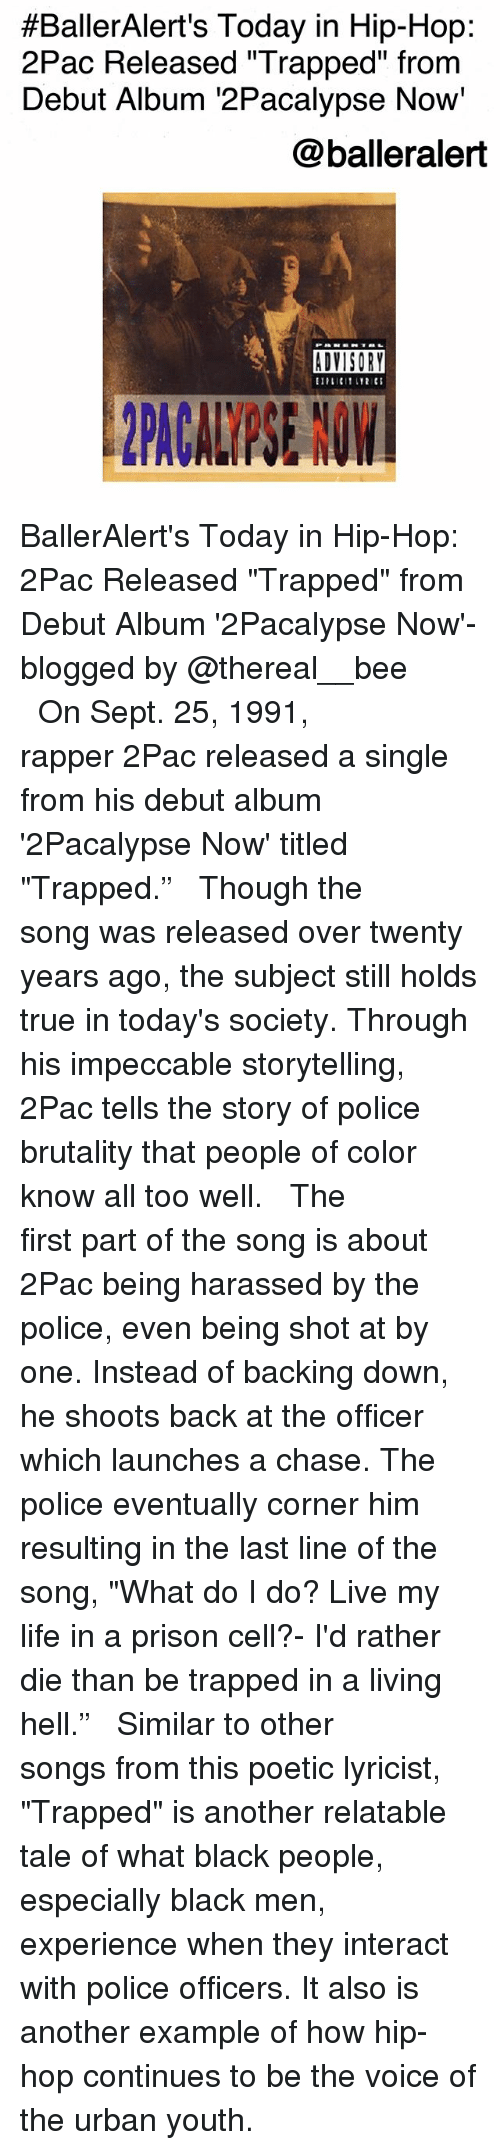 """Life, Memes, and Police:  #BallerAlert's Today in Hip-Hop:  2Pac Released """"Trapped"""" from  Debut Album 2Pacalypse Now'  @balleralert  ADVISORY BallerAlert's Today in Hip-Hop: 2Pac Released """"Trapped"""" from Debut Album '2Pacalypse Now'-blogged by @thereal__bee ⠀⠀⠀⠀⠀⠀⠀⠀⠀ ⠀⠀ On Sept. 25, 1991, rapper 2Pac released a single from his debut album '2Pacalypse Now' titled """"Trapped."""" ⠀⠀⠀⠀⠀⠀⠀⠀⠀ ⠀⠀ Though the song was released over twenty years ago, the subject still holds true in today's society. Through his impeccable storytelling, 2Pac tells the story of police brutality that people of color know all too well. ⠀⠀⠀⠀⠀⠀⠀⠀⠀ ⠀⠀ The first part of the song is about 2Pac being harassed by the police, even being shot at by one. Instead of backing down, he shoots back at the officer which launches a chase. The police eventually corner him resulting in the last line of the song, """"What do I do? Live my life in a prison cell?- I'd rather die than be trapped in a living hell."""" ⠀⠀⠀⠀⠀⠀⠀⠀⠀ ⠀⠀ Similar to other songs from this poetic lyricist, """"Trapped"""" is another relatable tale of what black people, especially black men, experience when they interact with police officers. It also is another example of how hip-hop continues to be the voice of the urban youth."""